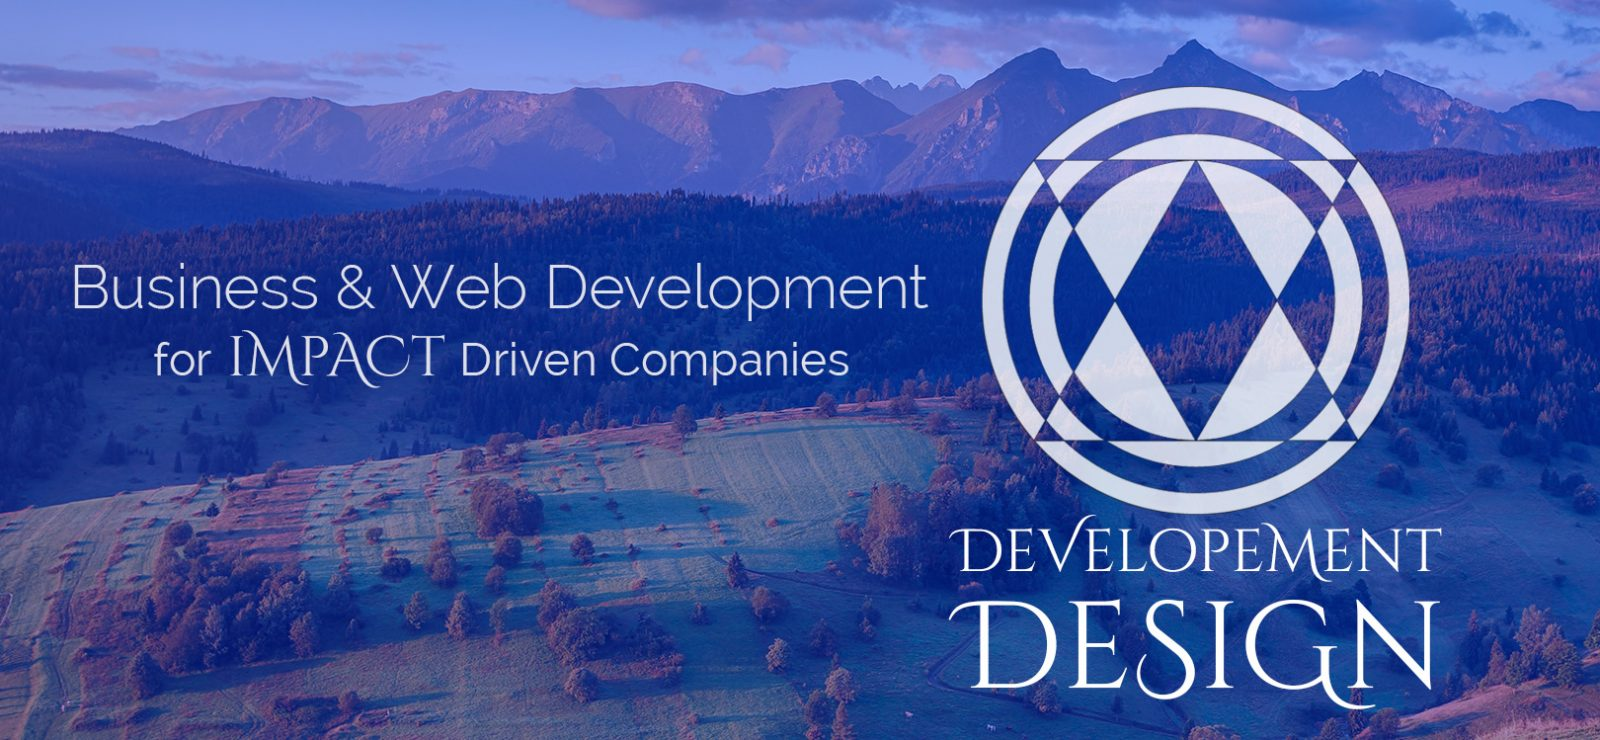 Image for Development Design Services